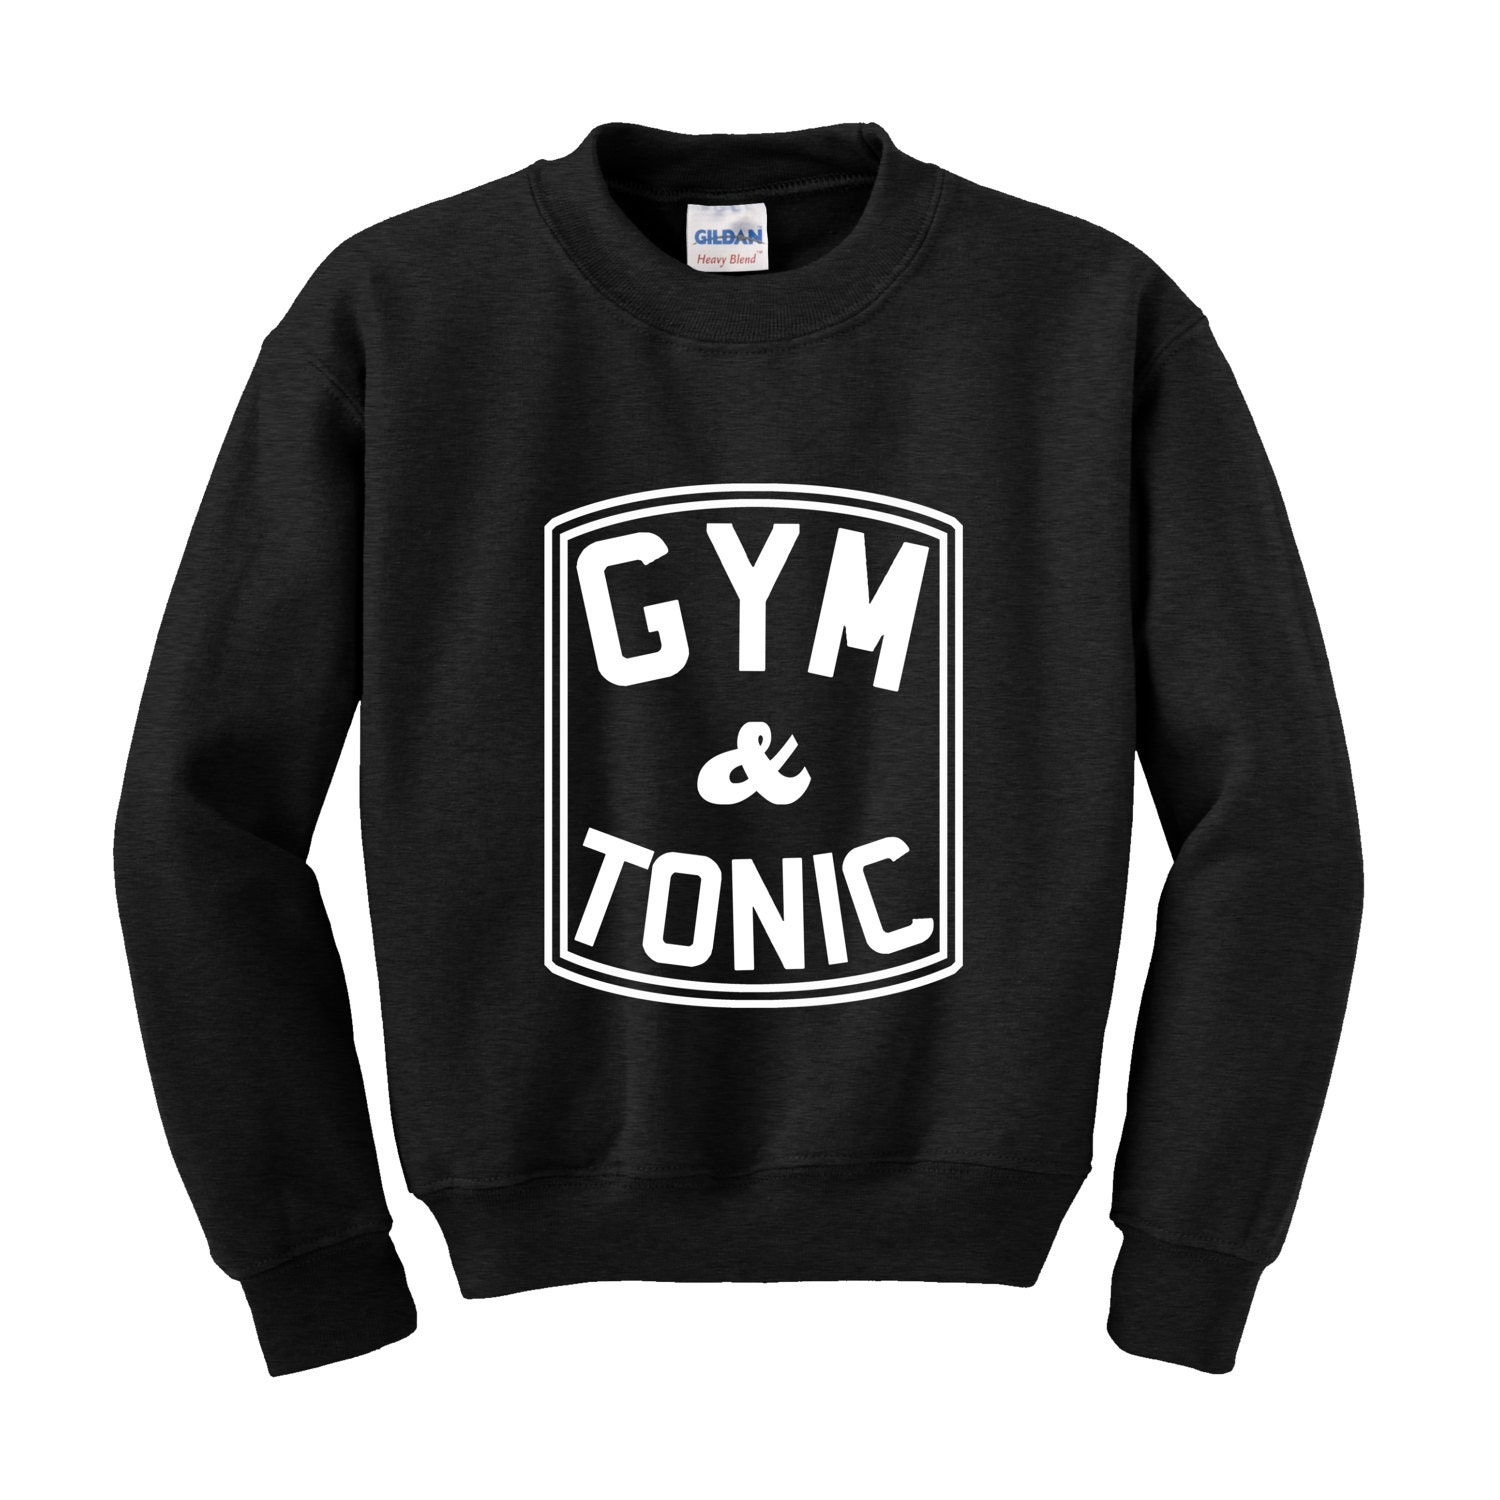 GYM  TONIC Slogan Sweatshirt Funny Fitness Training Top Sports Gin and Tonic